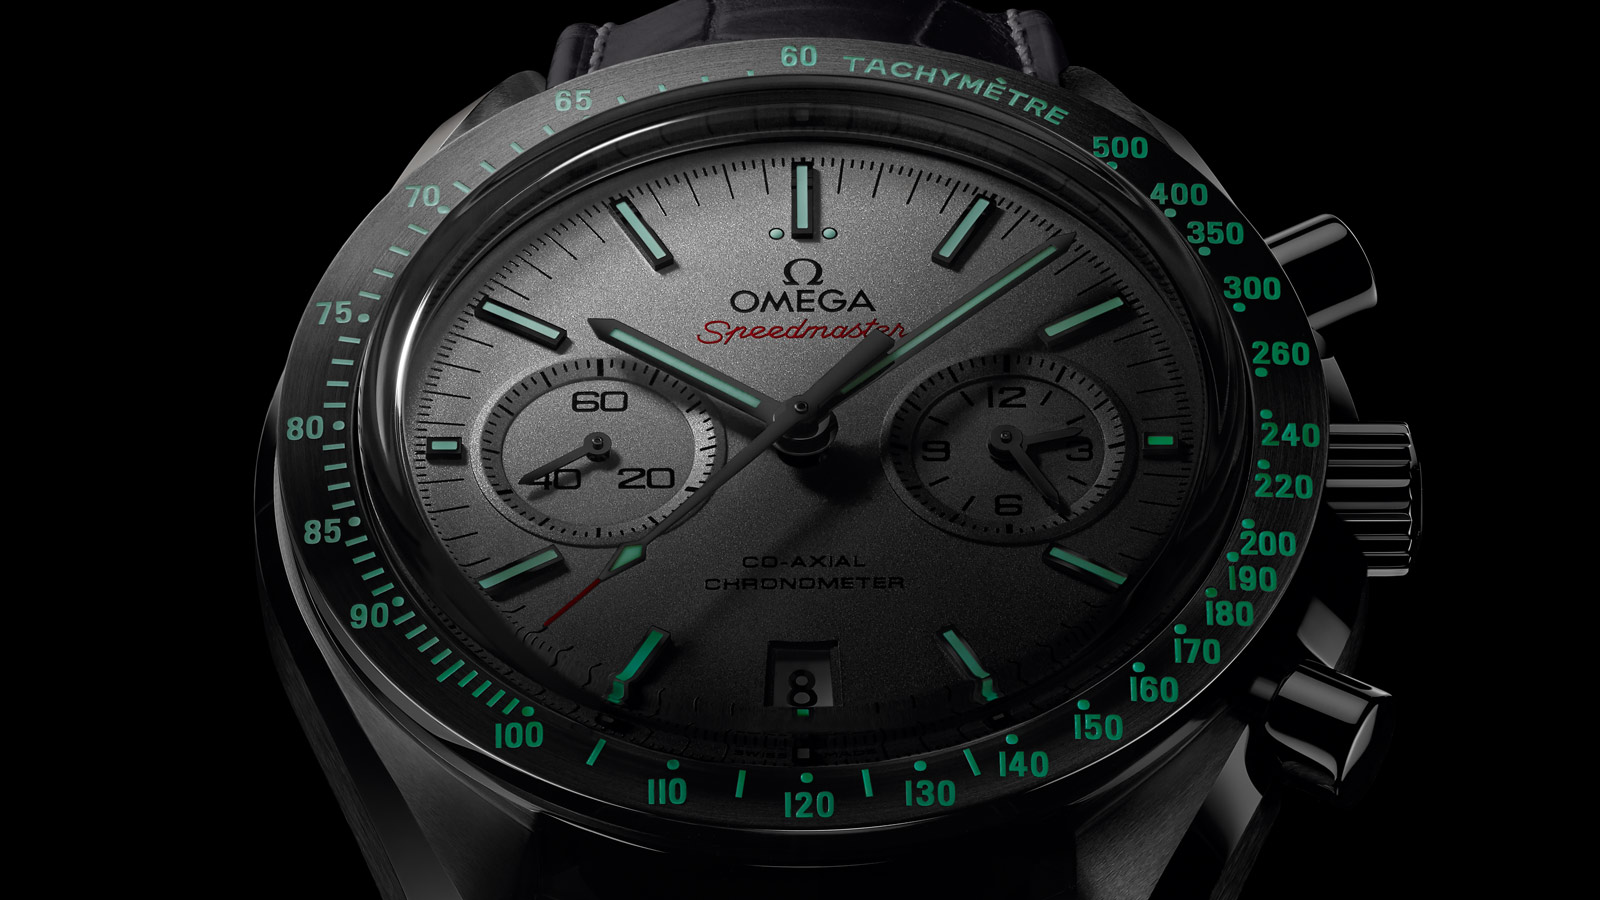 Speedmaster Moonwatch Moonwatch Omega Co‑Axial Chronograph 44.25 mm - 311.93.44.51.99.001 - View 2